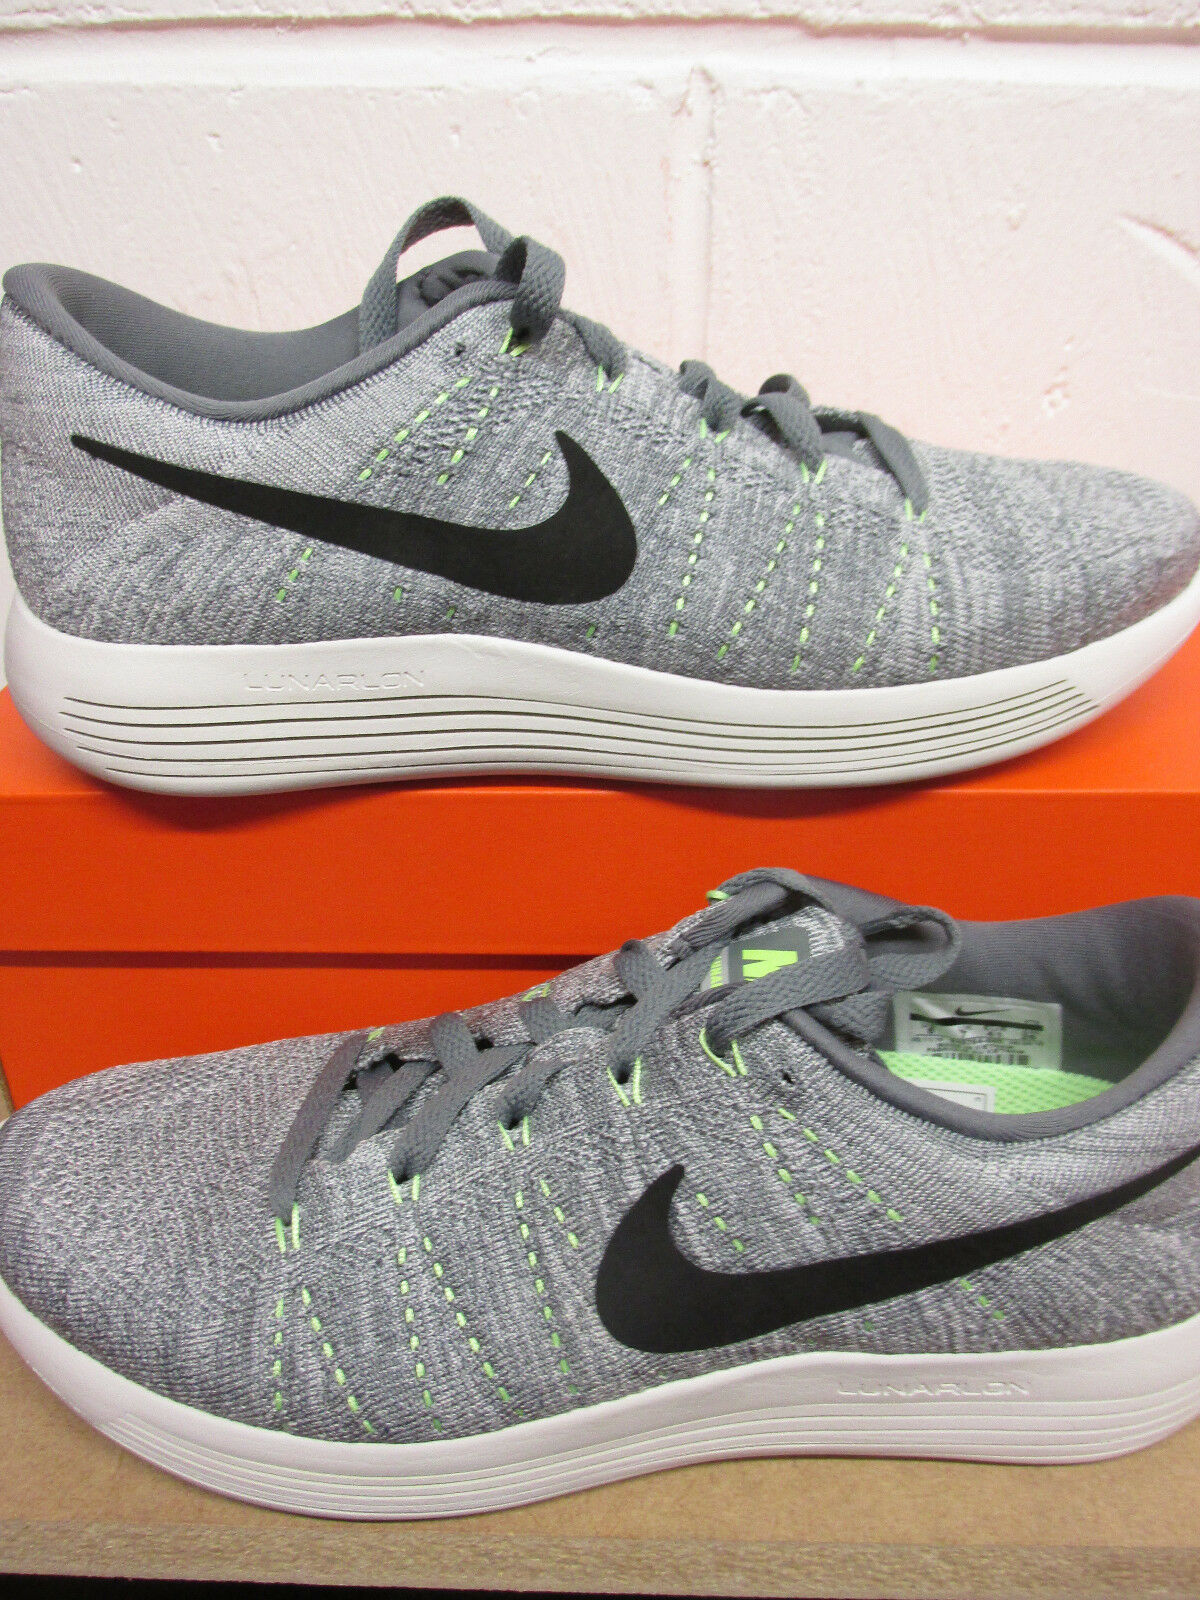 Great discount Nike Lunarepic Low Flyknit Mens Running Trainers 843764 005 Sneakers Shoes